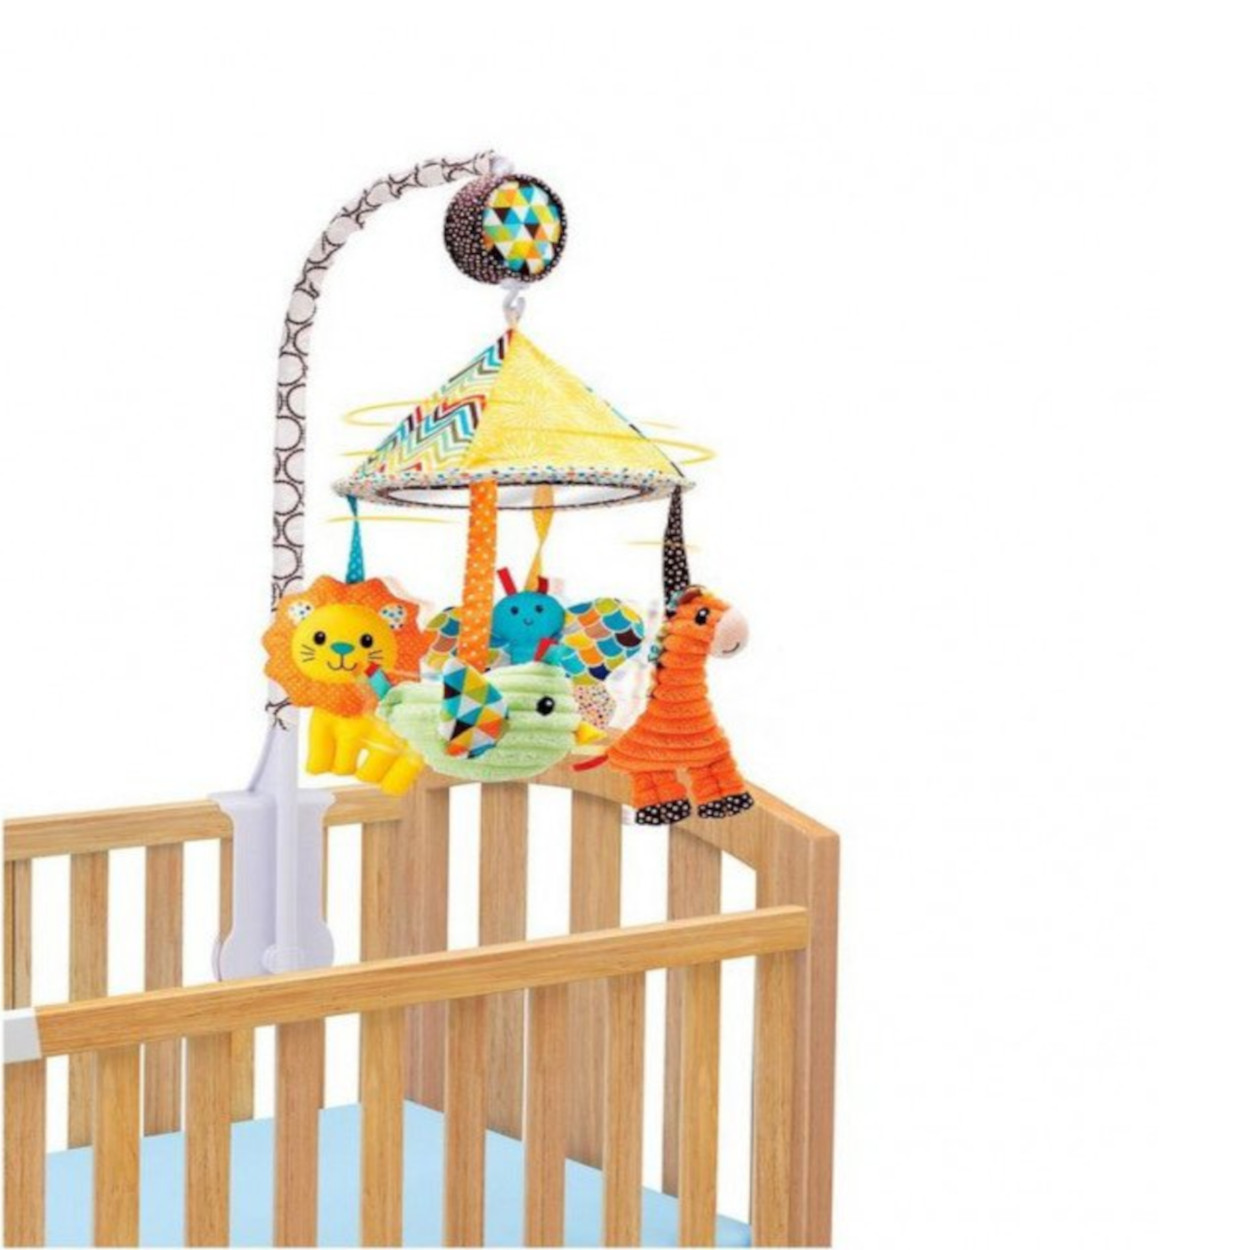 Carrusel musical cuerda multicolor, Infantino.